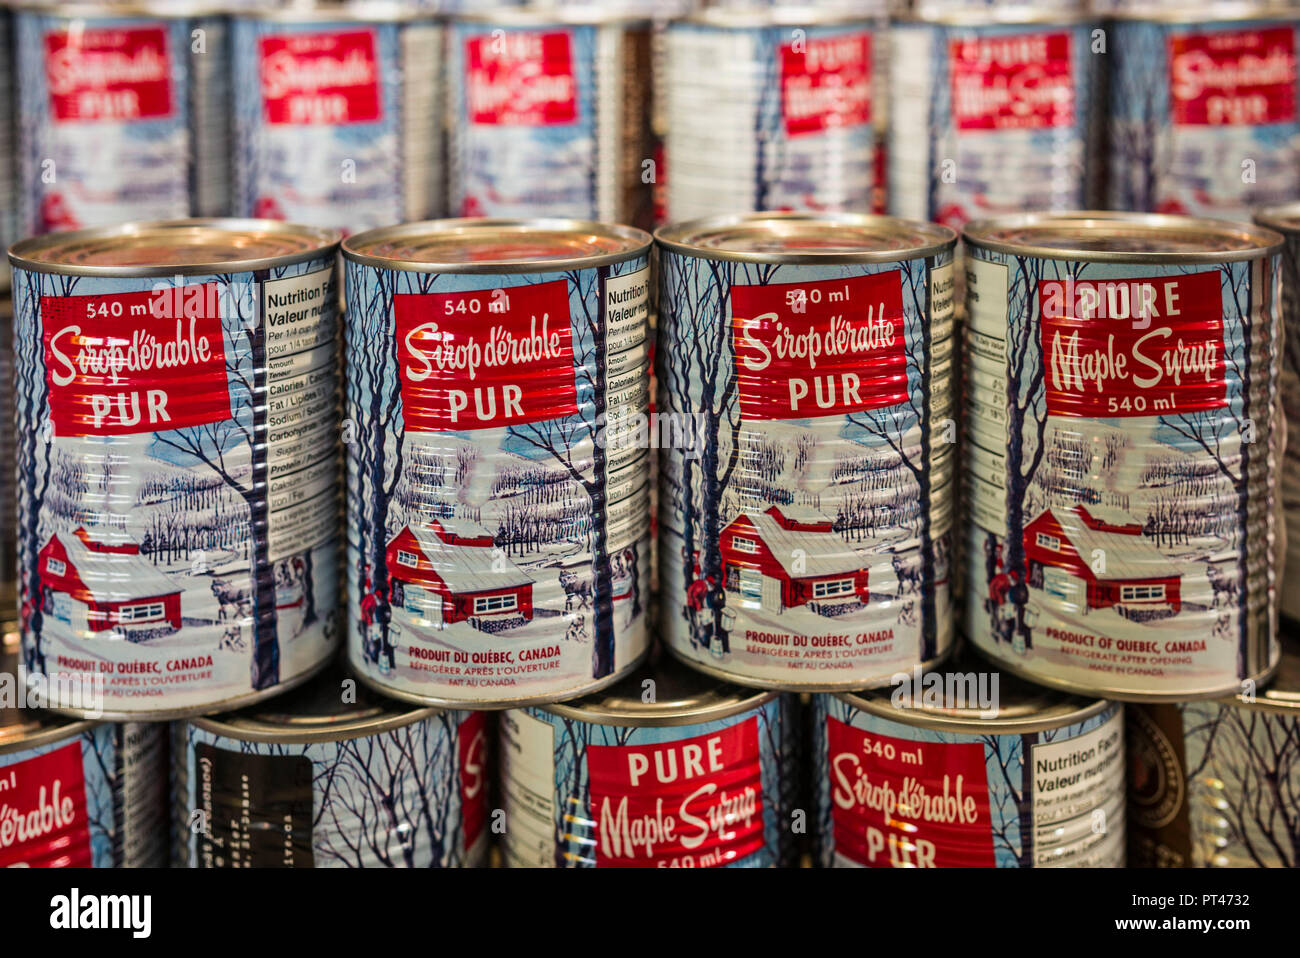 Canada, Quebec, Montreal, Little Italy, Marche Jean Talon market, autumn,  cans of local maple syrup - Stock Image